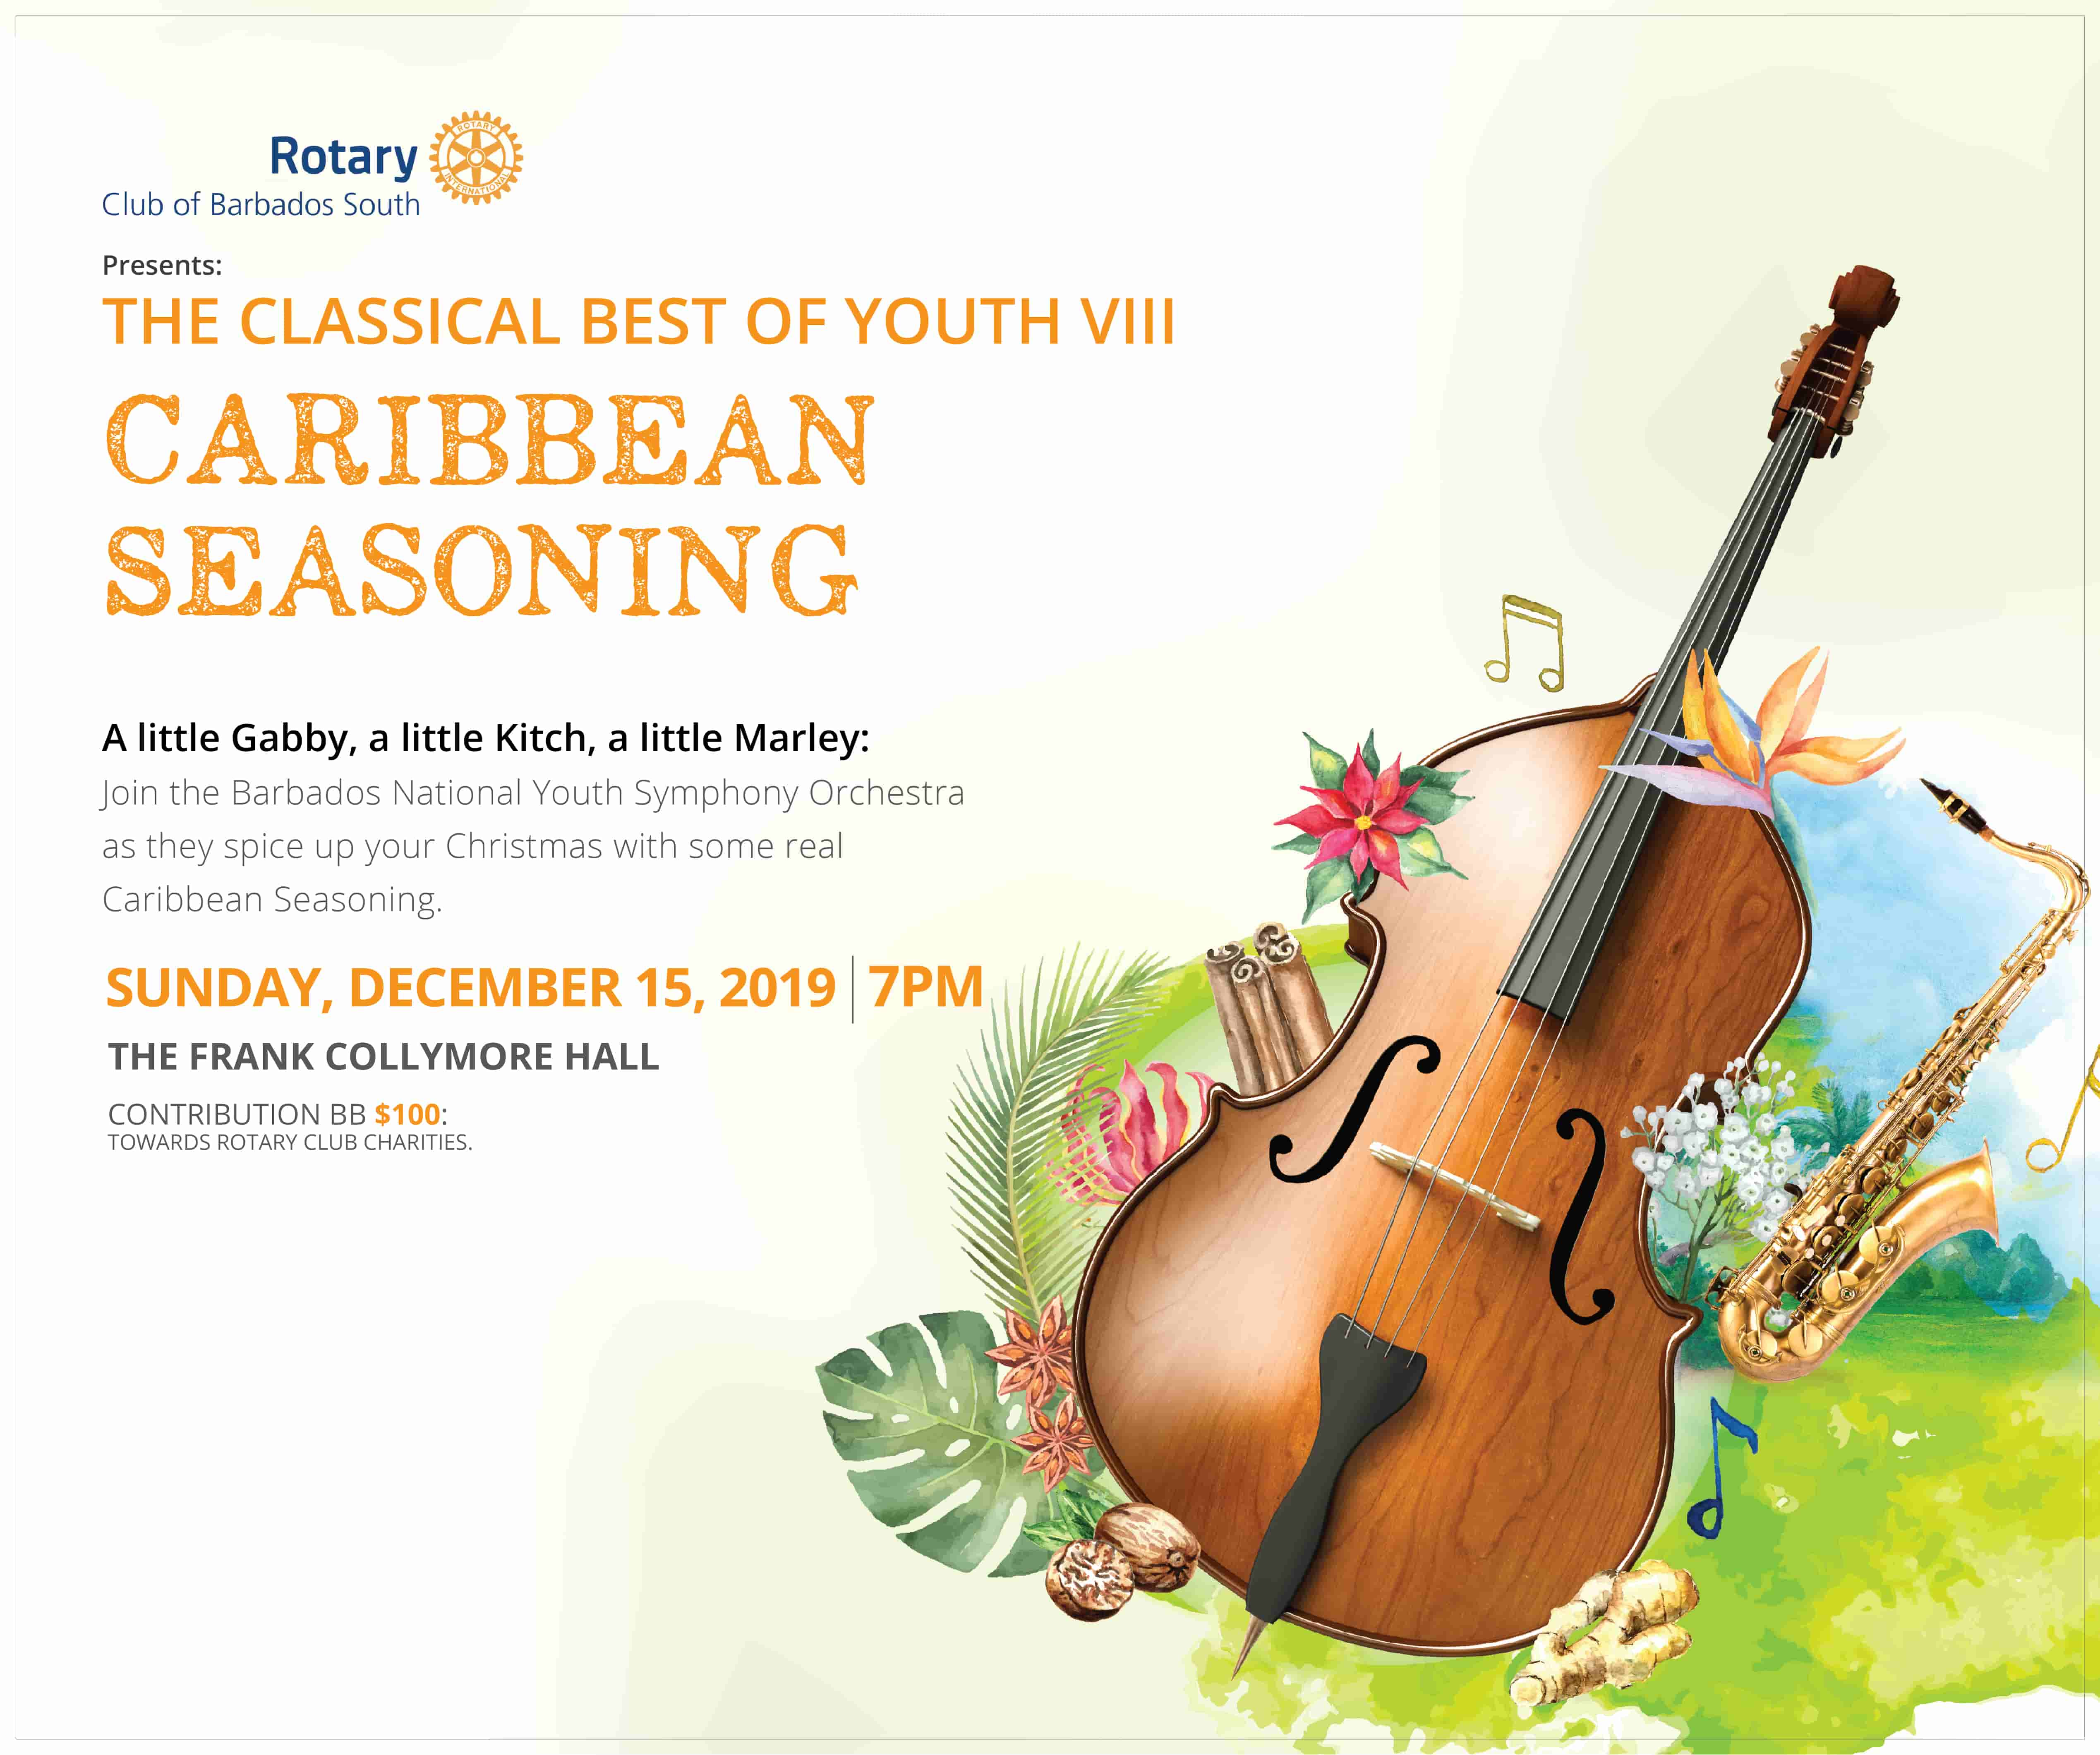 CLASSICAL BEST OF YOUTH VIII - Caribbean Seasoning